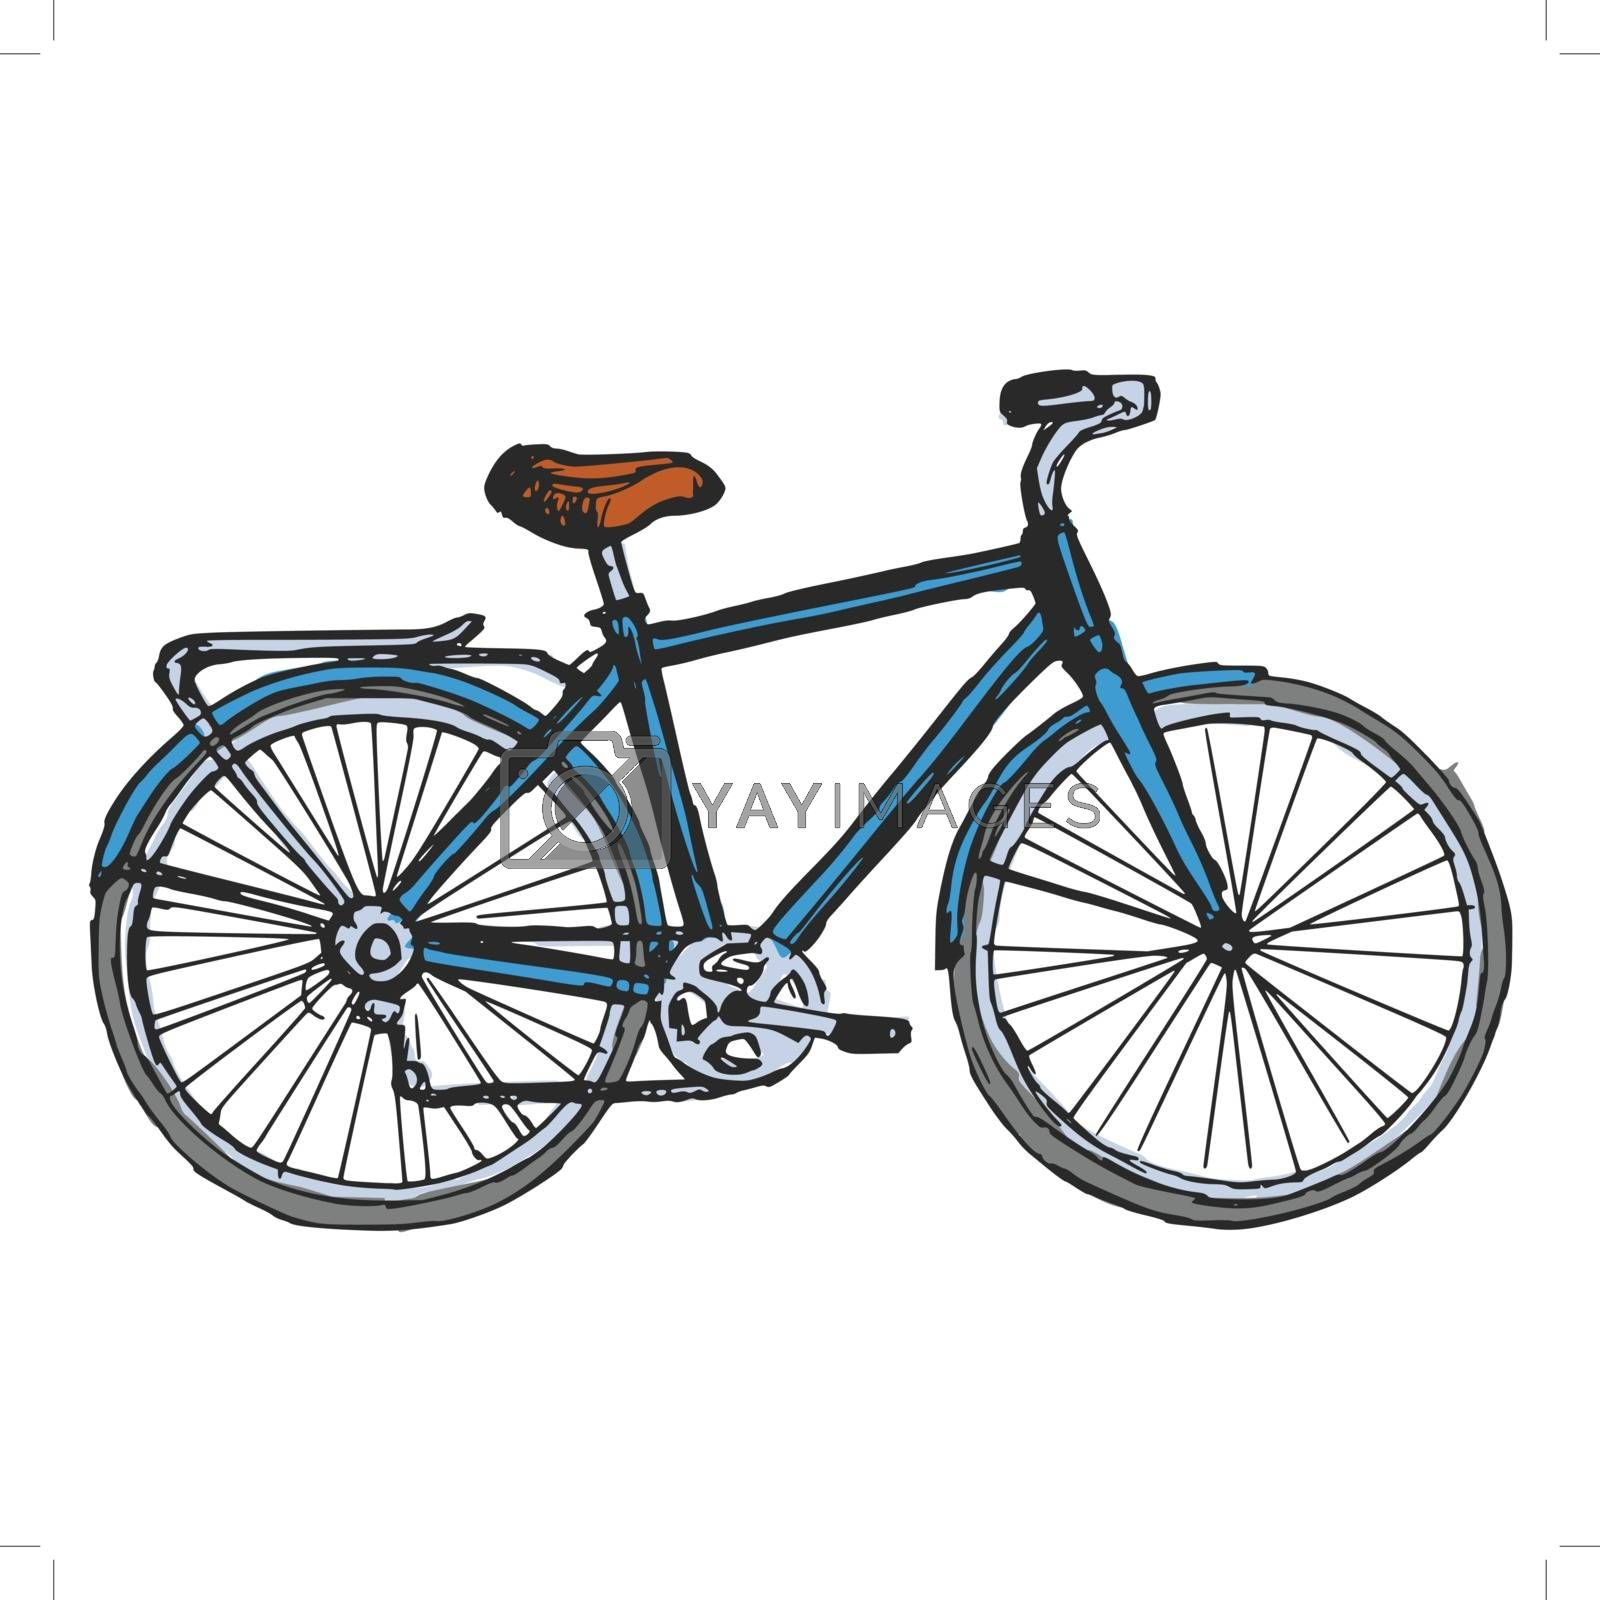 hand drawn, sketch, cartoon illustration of bicycle